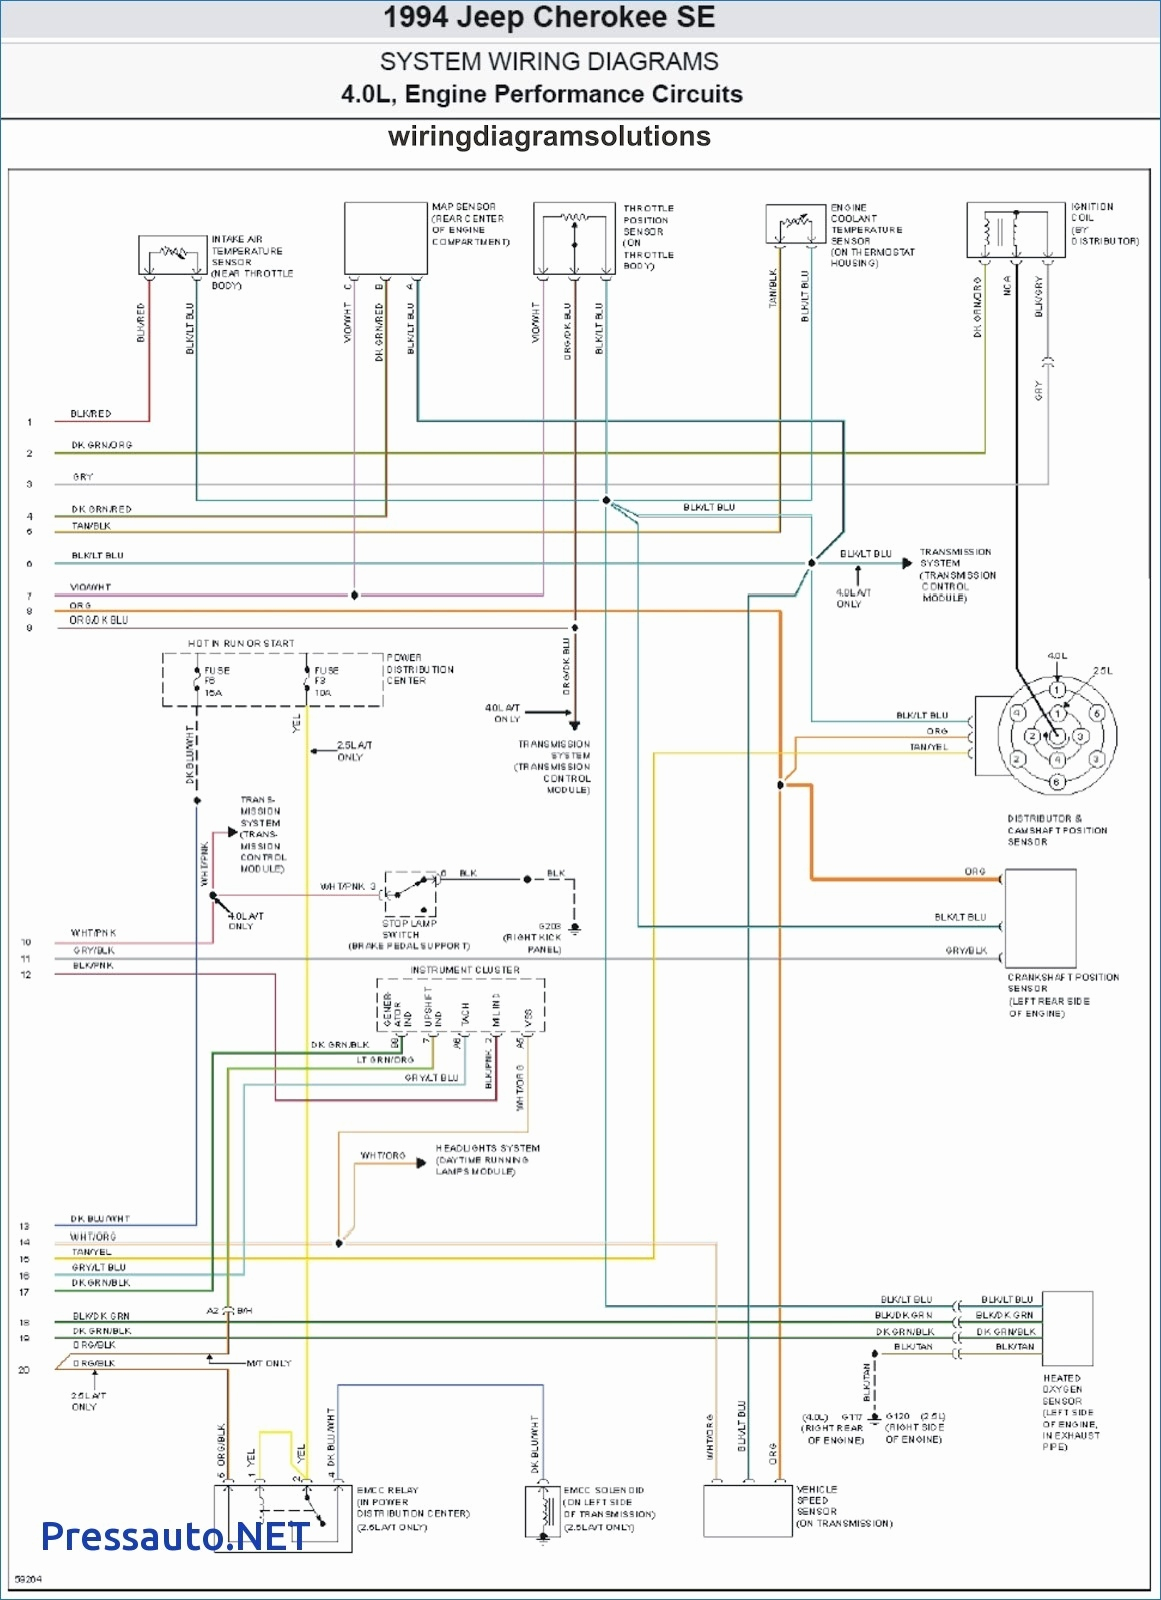 6 Inspirational 1989 Jeep Wrangler Wiring Diagram Graphics | Simple - Jk Trailer Wiring Diagram